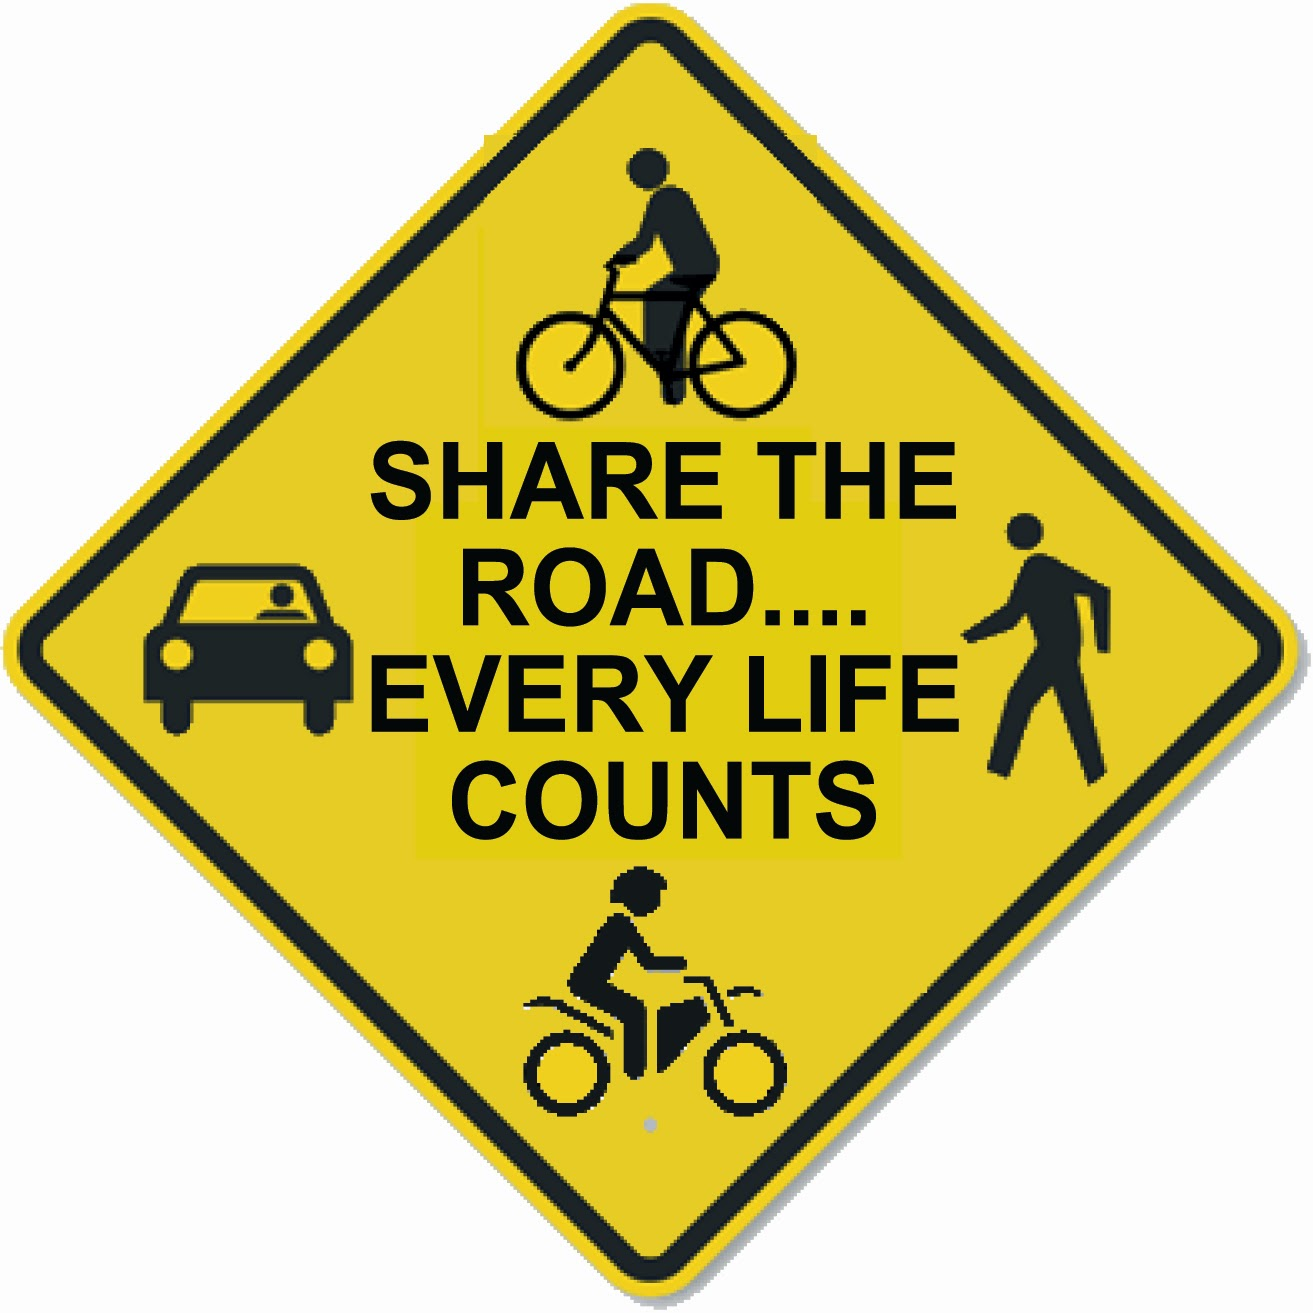 road safety Important road safety information for drivers, cyclists and pedestrians in ontario.